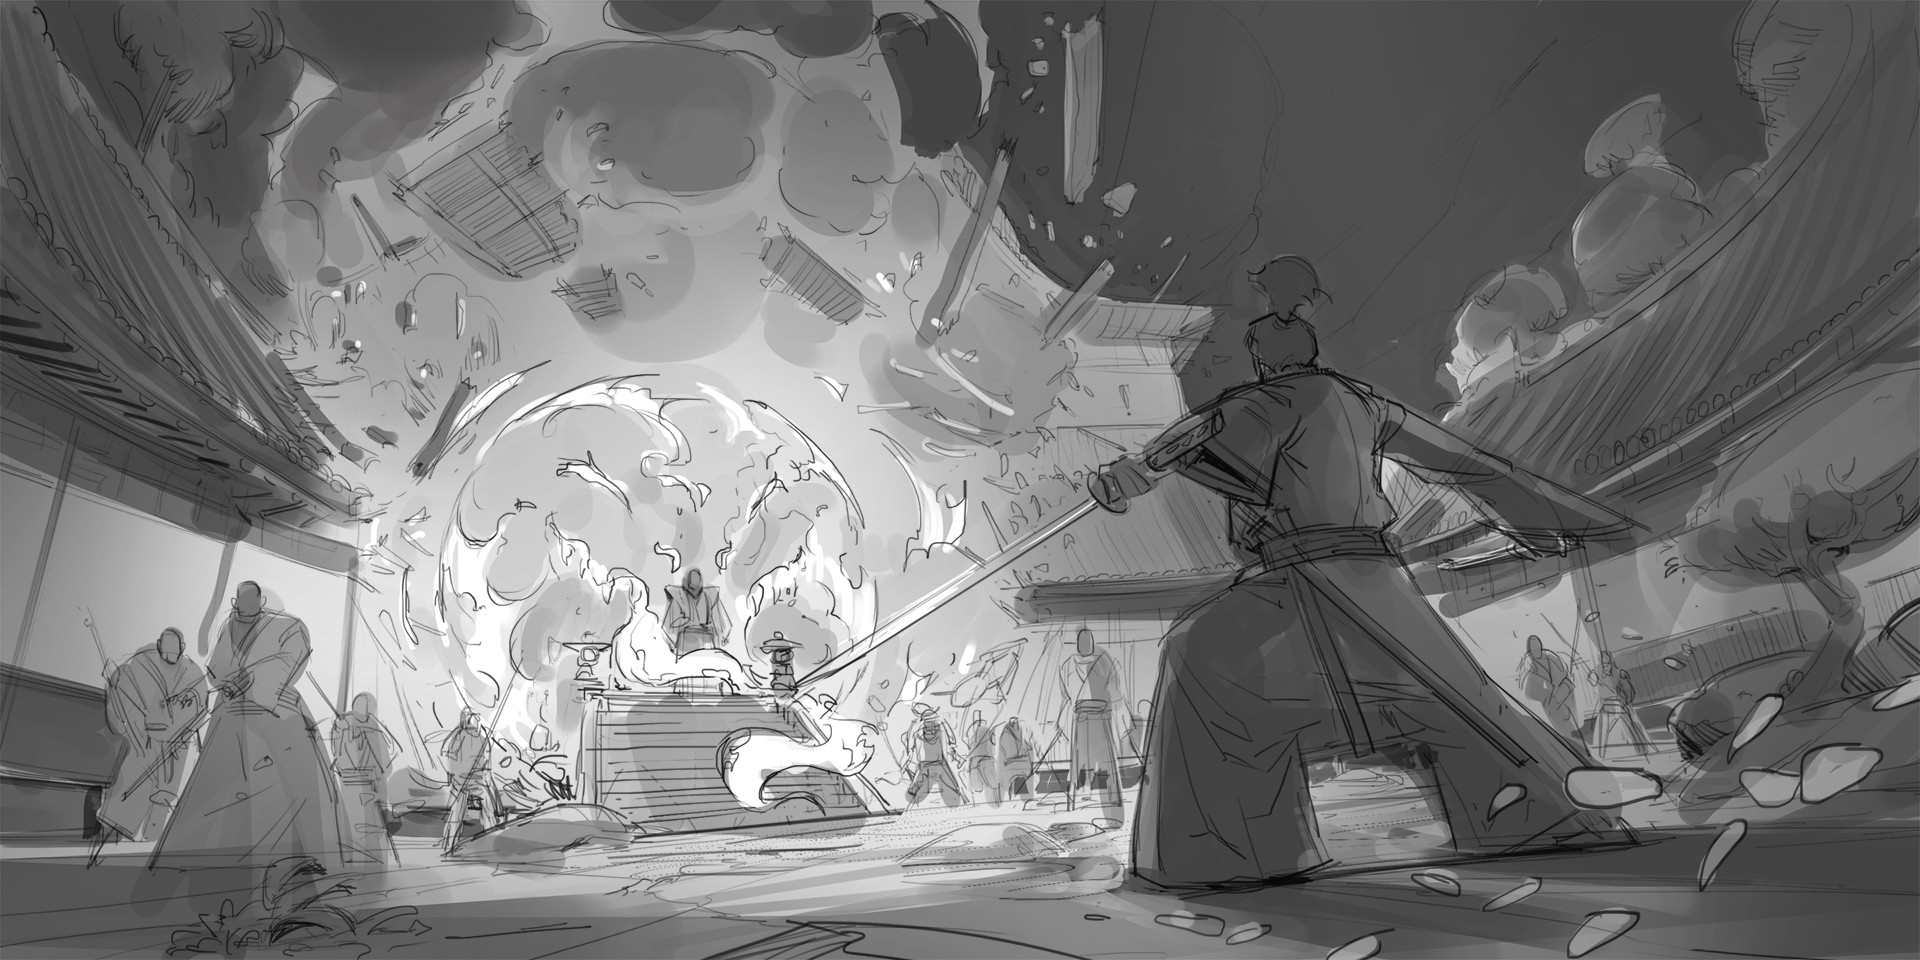 Klaus pillon theshogunate keyframes sketch 004